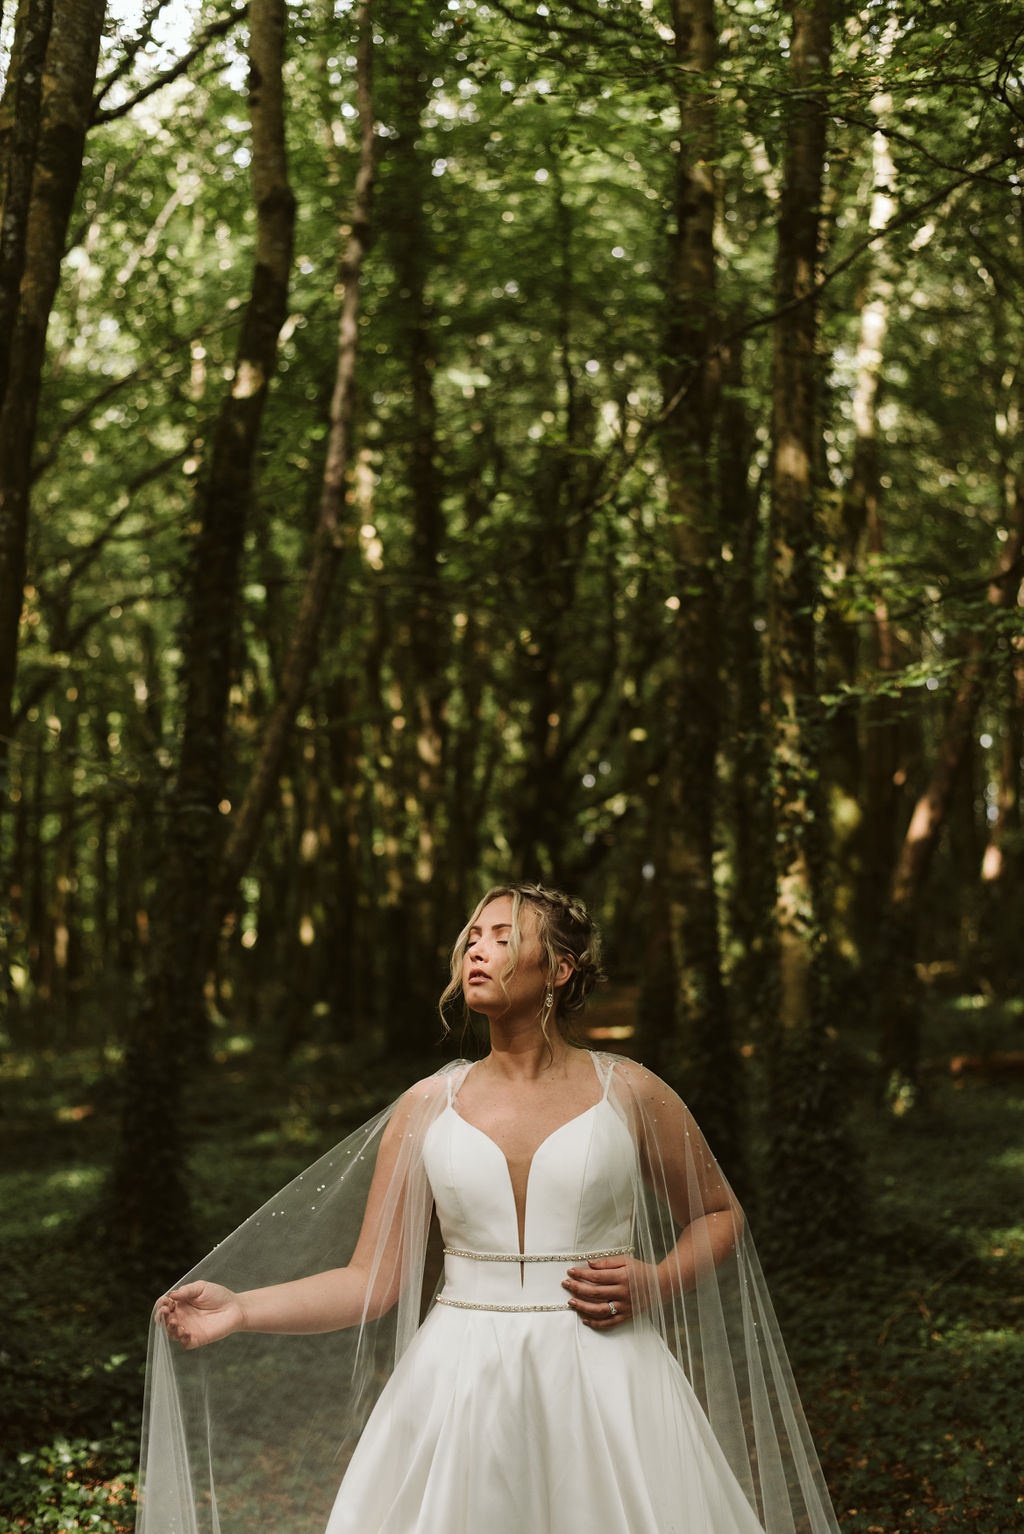 Sun hits bride's face in the middle of the woods in Ireland while she's wearing a simple ballgown wedding dress with beaded waist detail and a tulle bridal cape